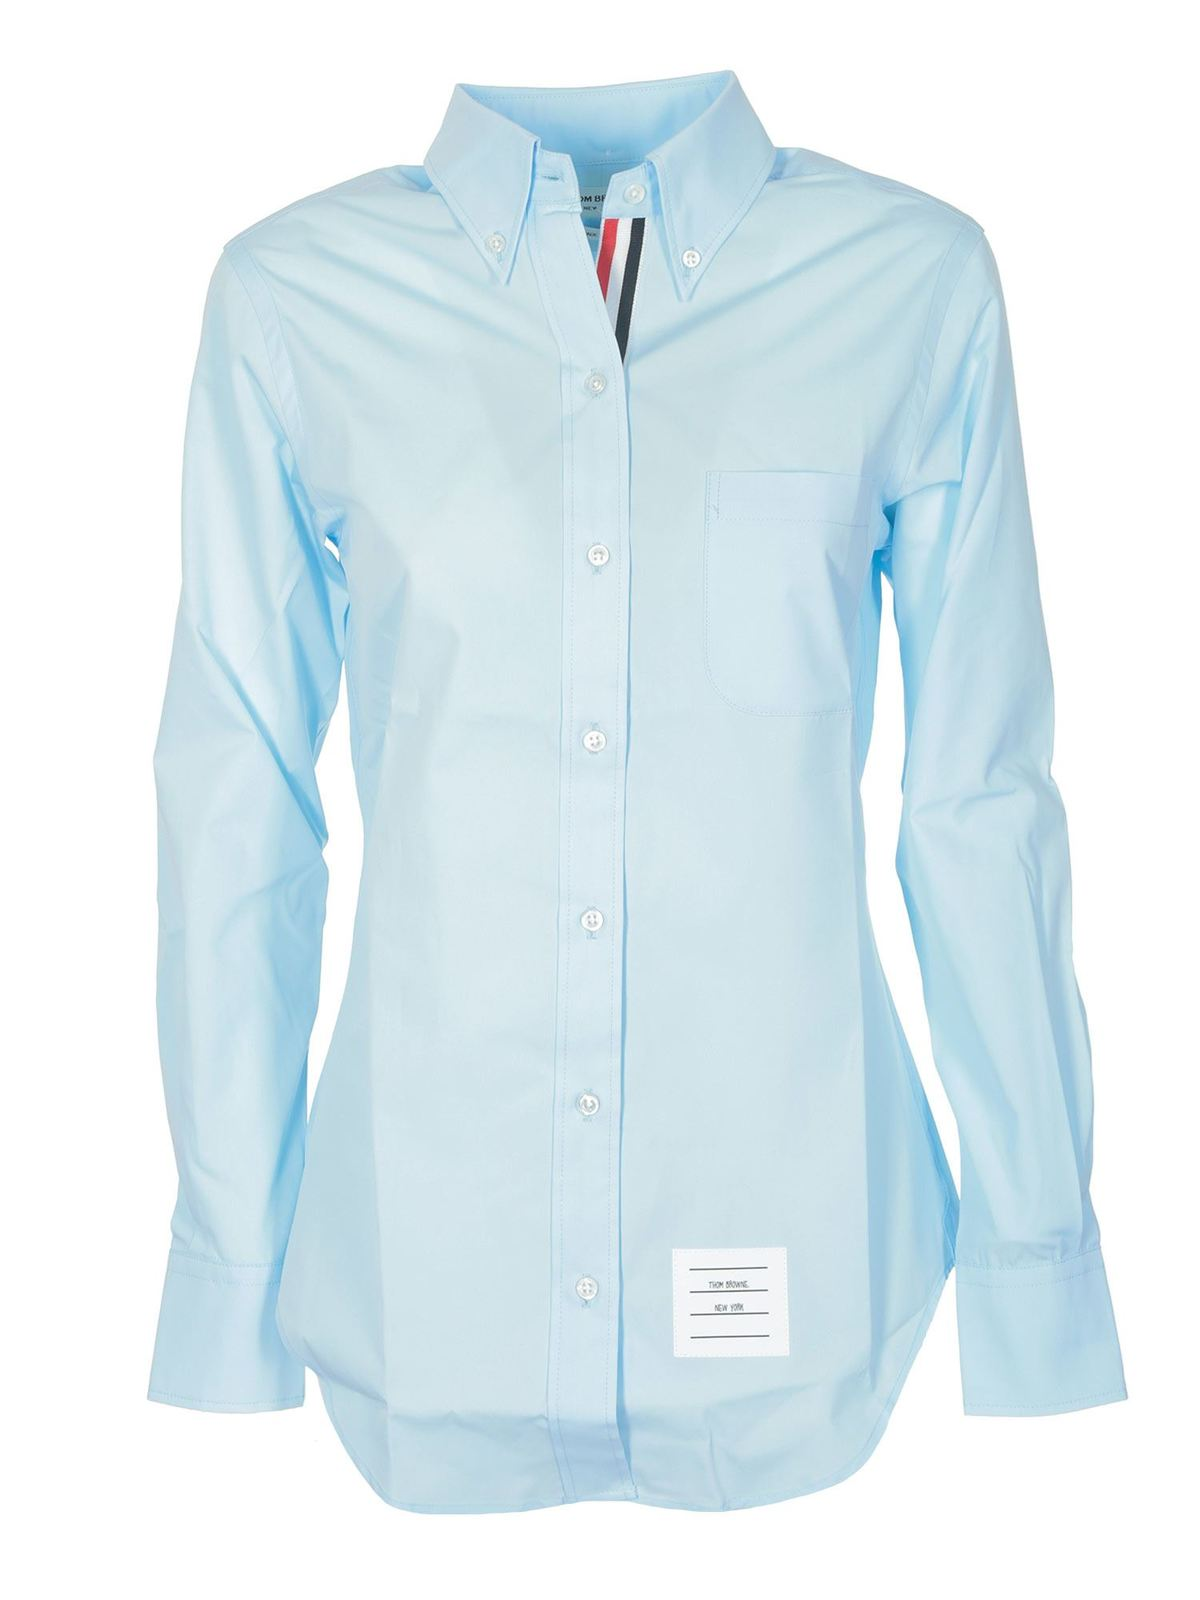 Thom Browne BUTTON-DOWN SHIRT IN LIGHT BLUE